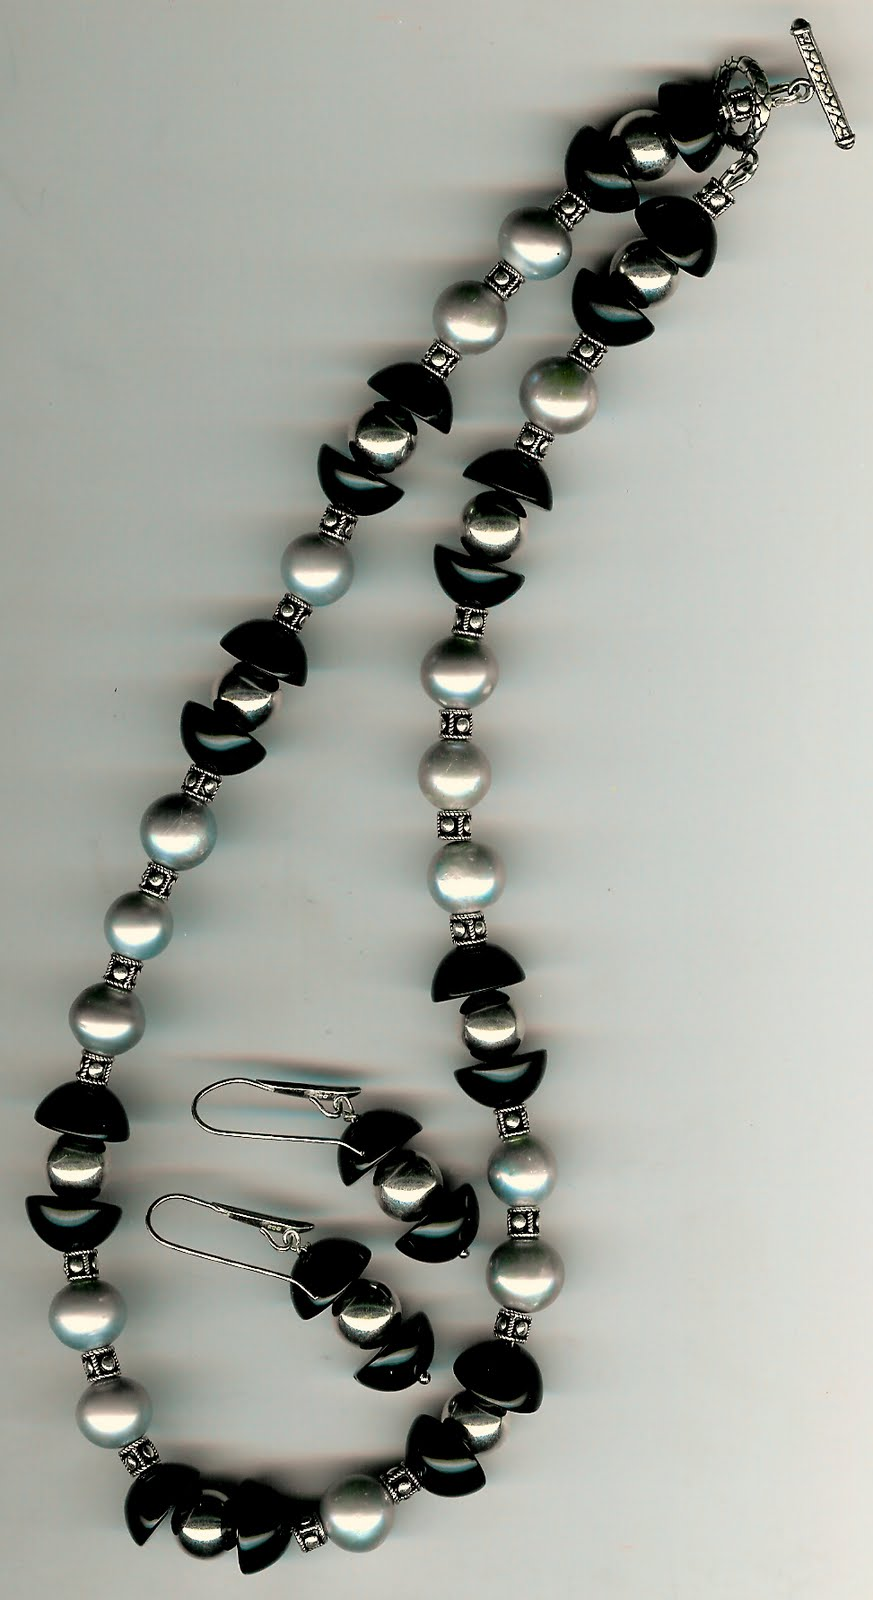 137. Akoya pearls, Onyx with Bali Sterling Silver + Earrings